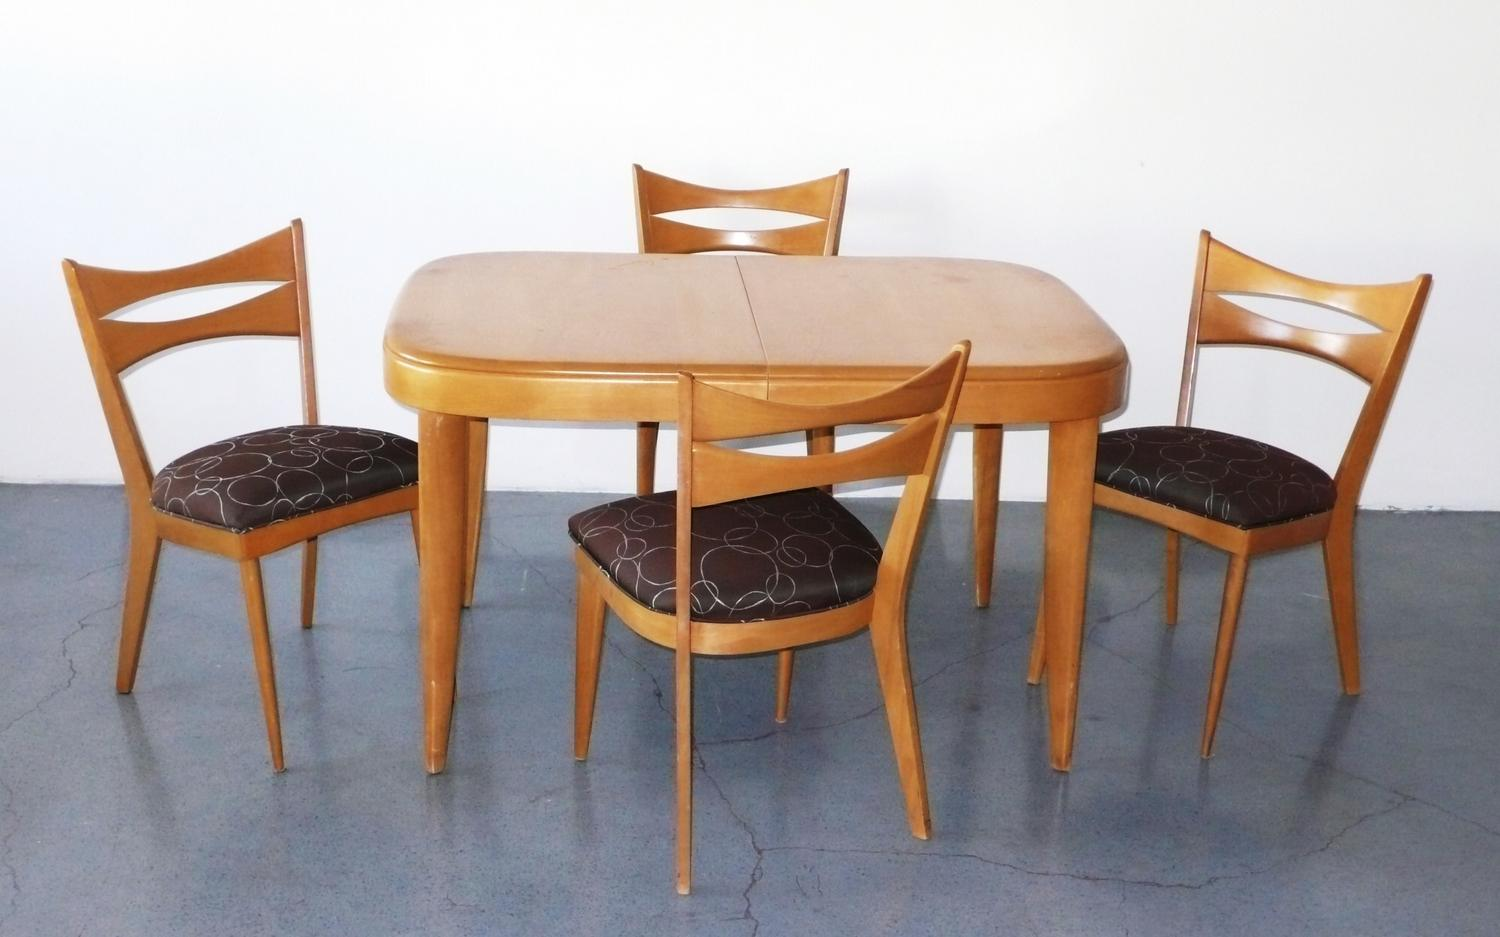 Heywood wakefield dining set with 4 chairs c 1950 : 98873172 from www.icollector.com size 1500 x 937 jpeg 112kB